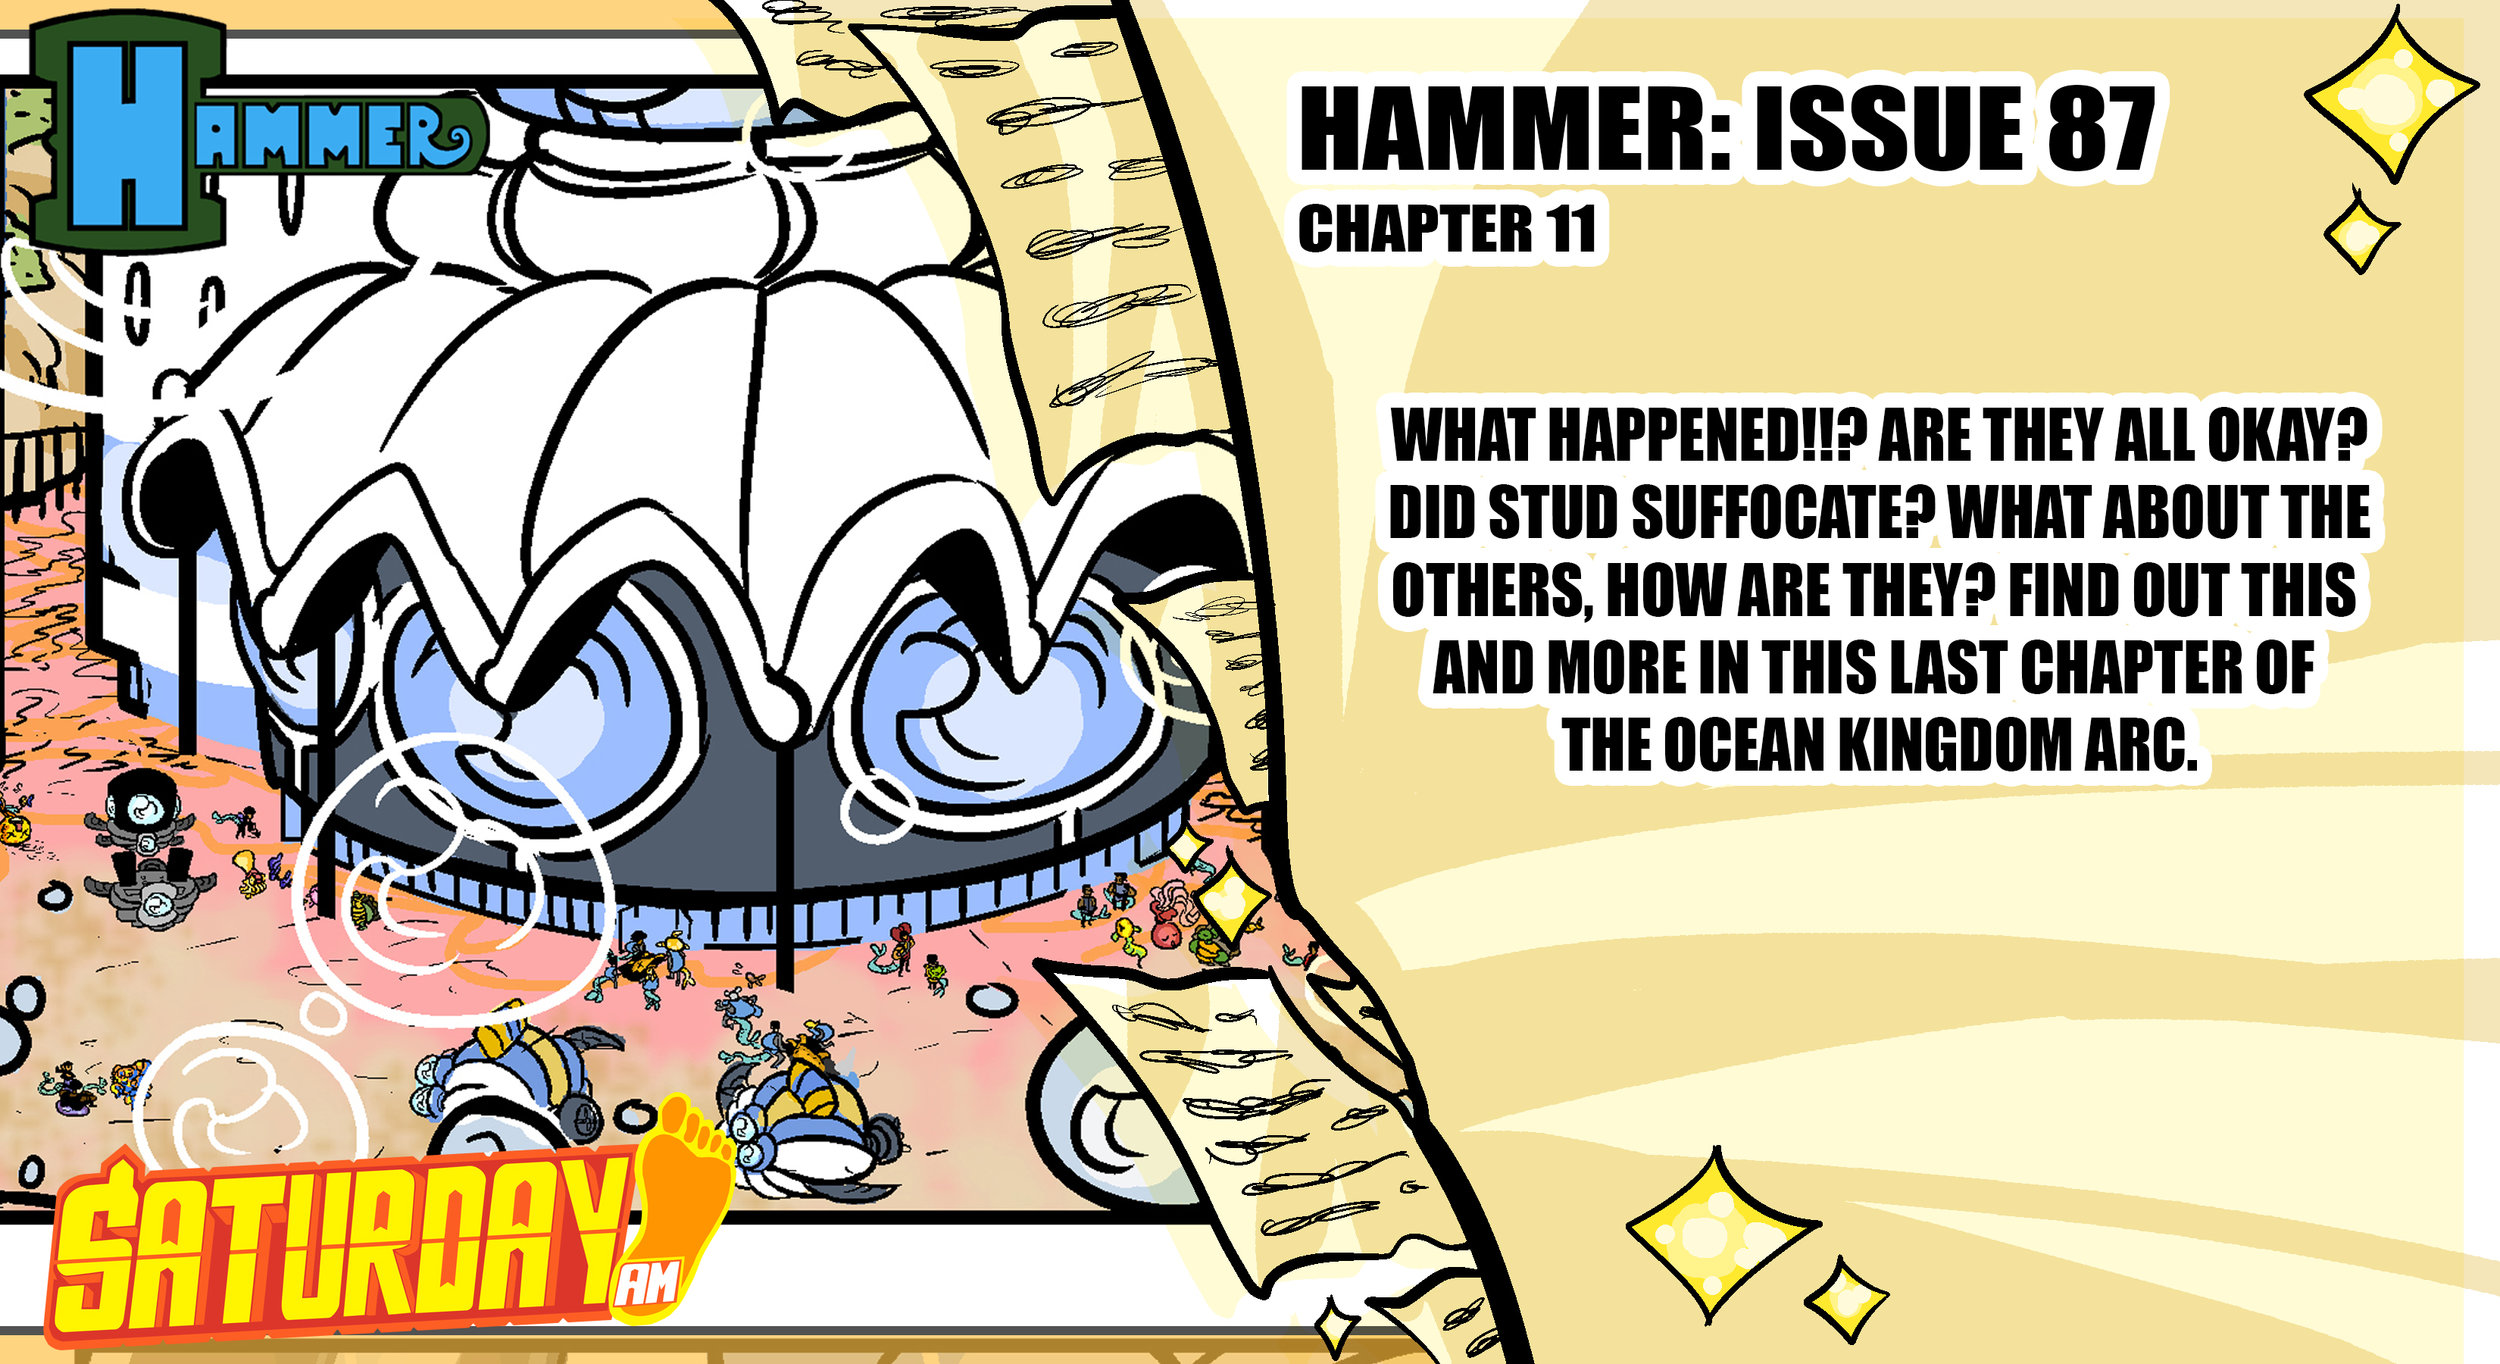 HAMMER WEBSITE_LATEST ISSUE GRAPHIC #87.jpg